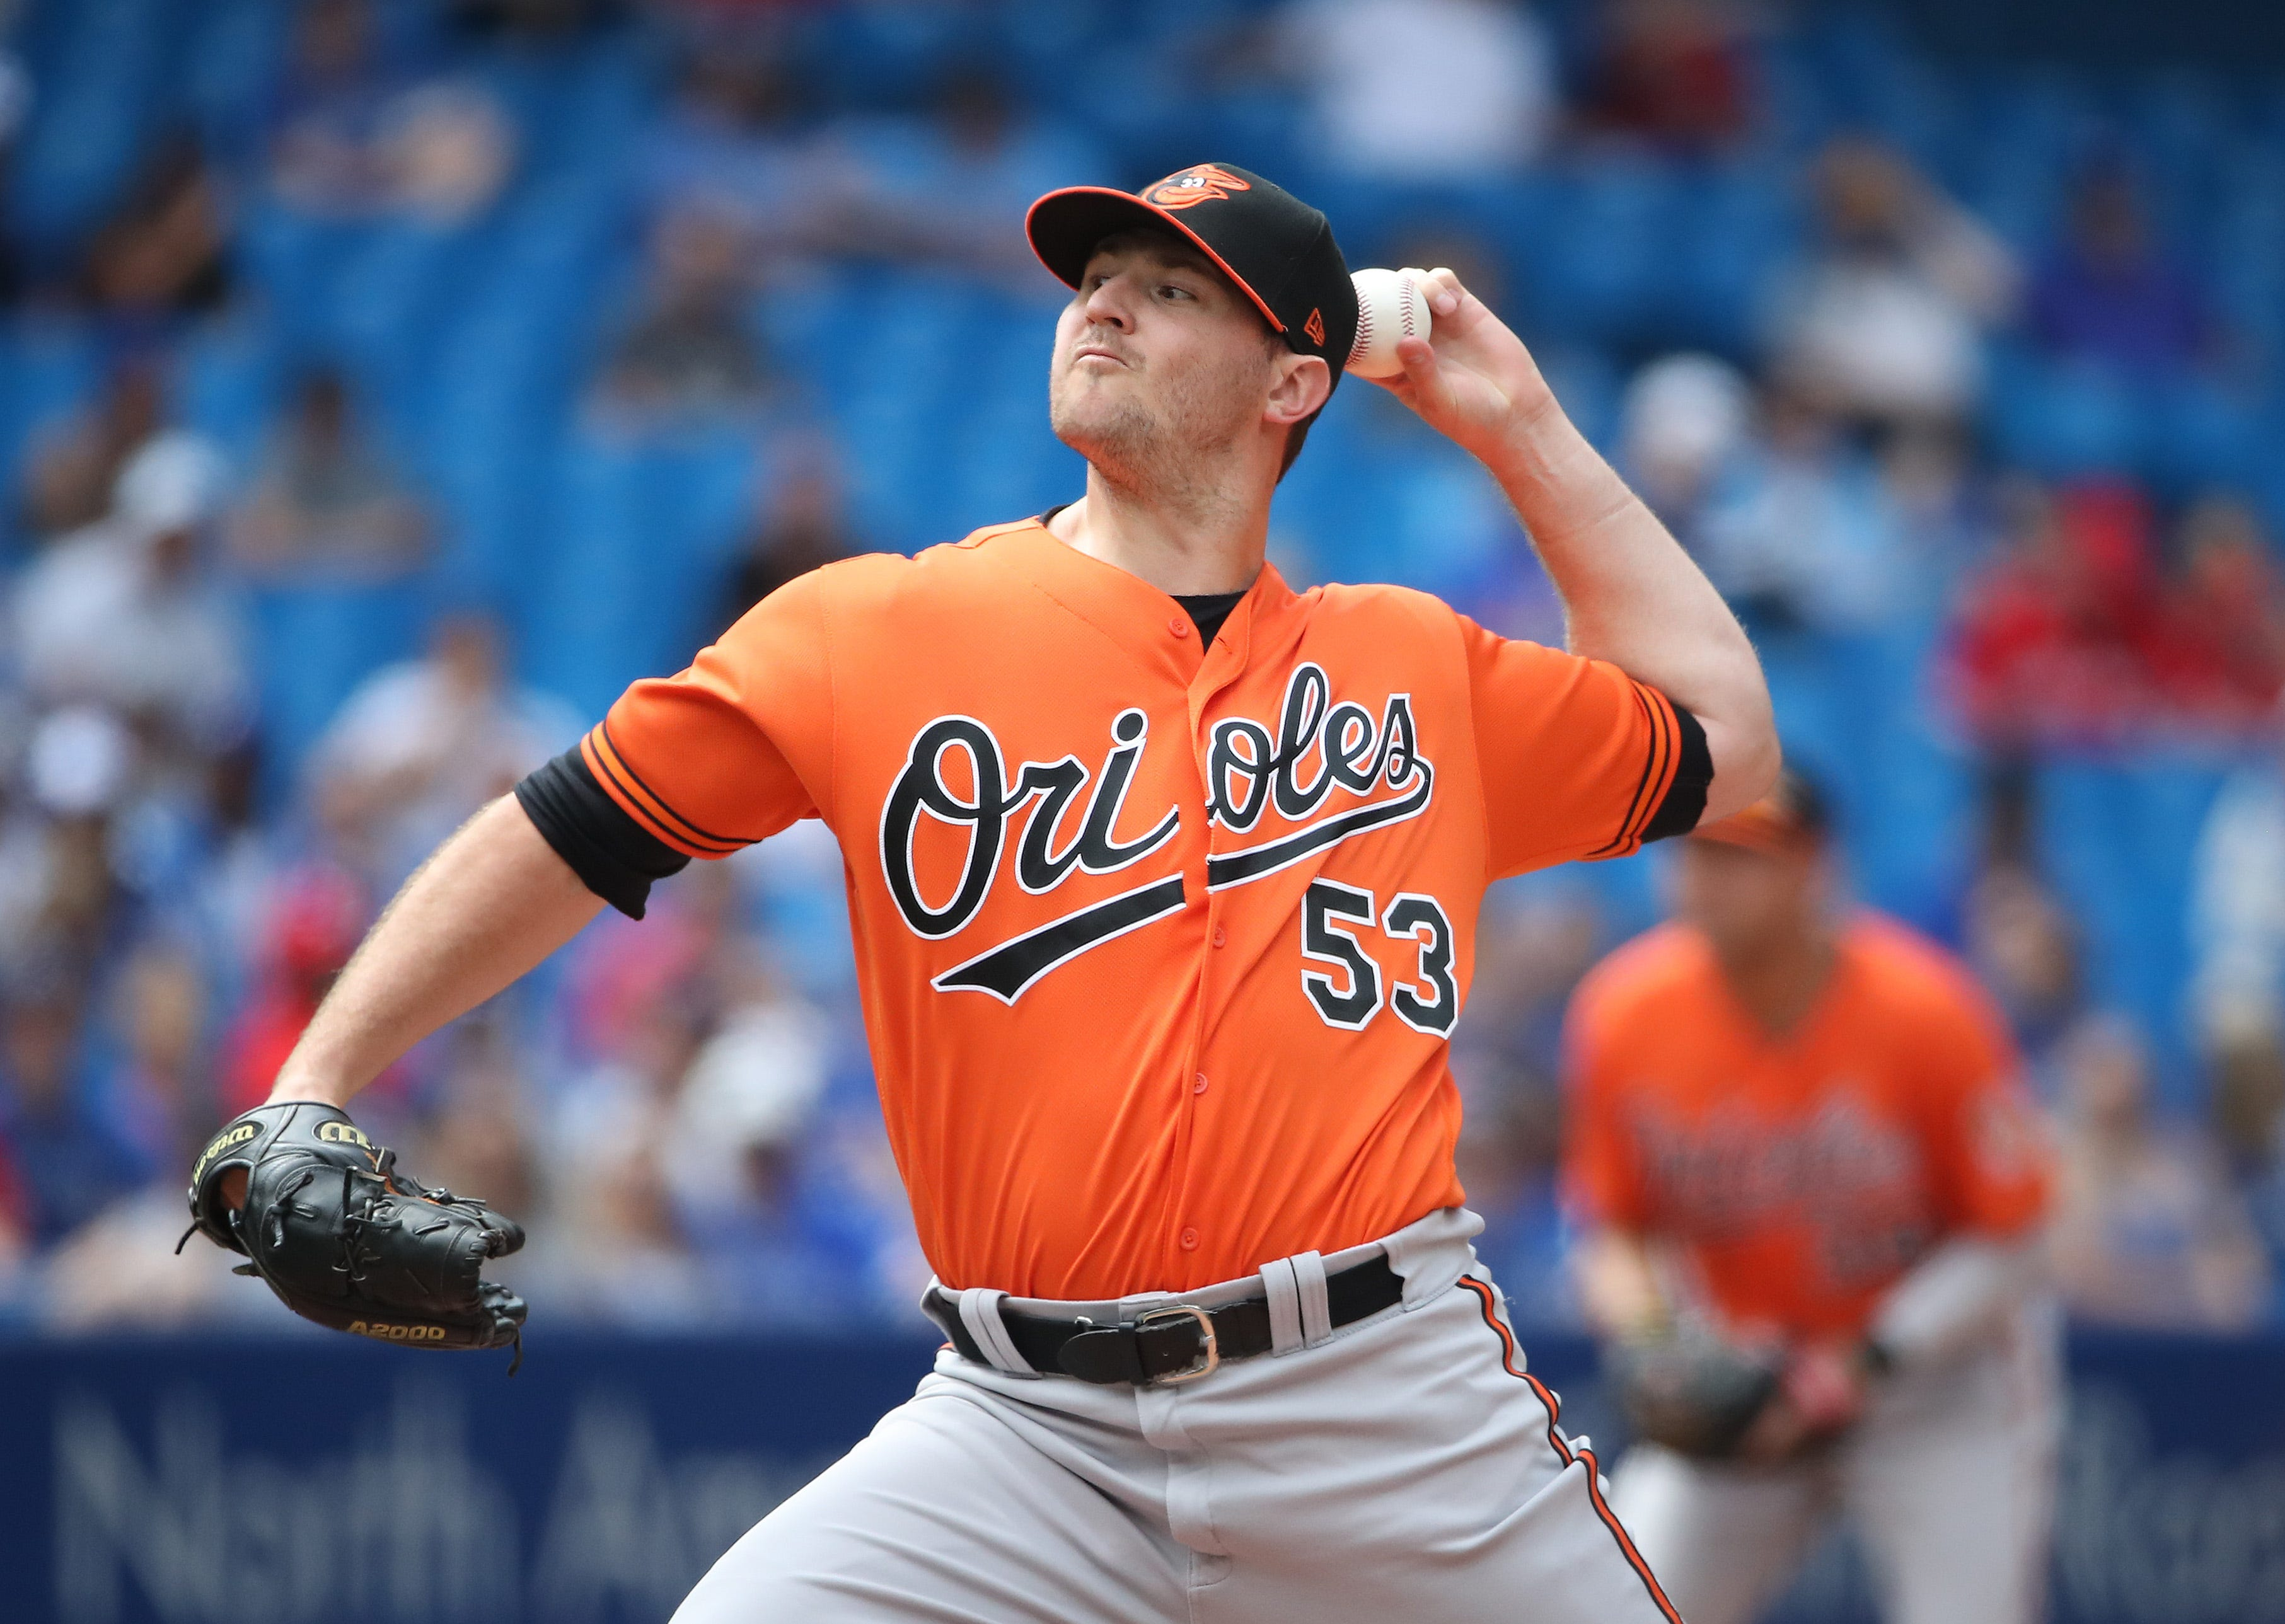 be1291eb1 MLB trade deadline: On Zach Britton, 8 teams definitely buying and  contenders' needs